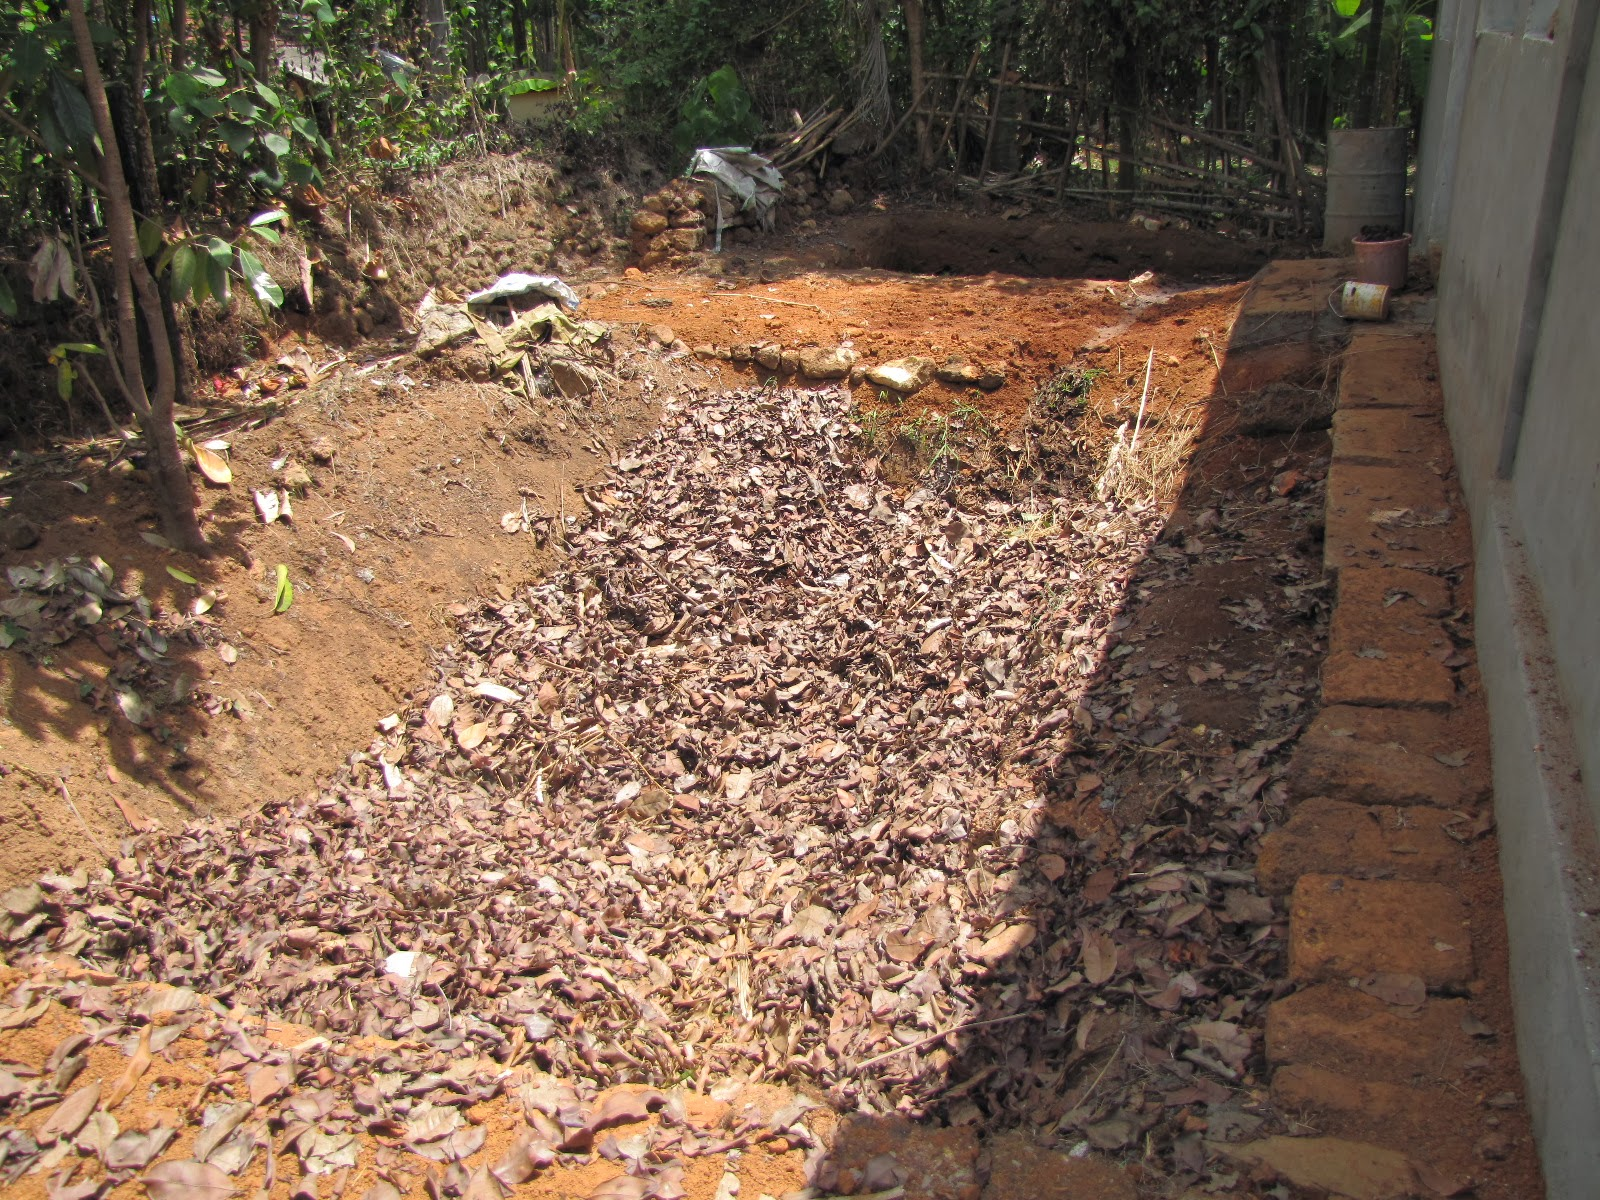 compost pit Care and maintenance of your hot compost pile bin: should be approximately 3' x 3' x 3', well ventilated, with easy access to the pile for turning with a pitch fork.